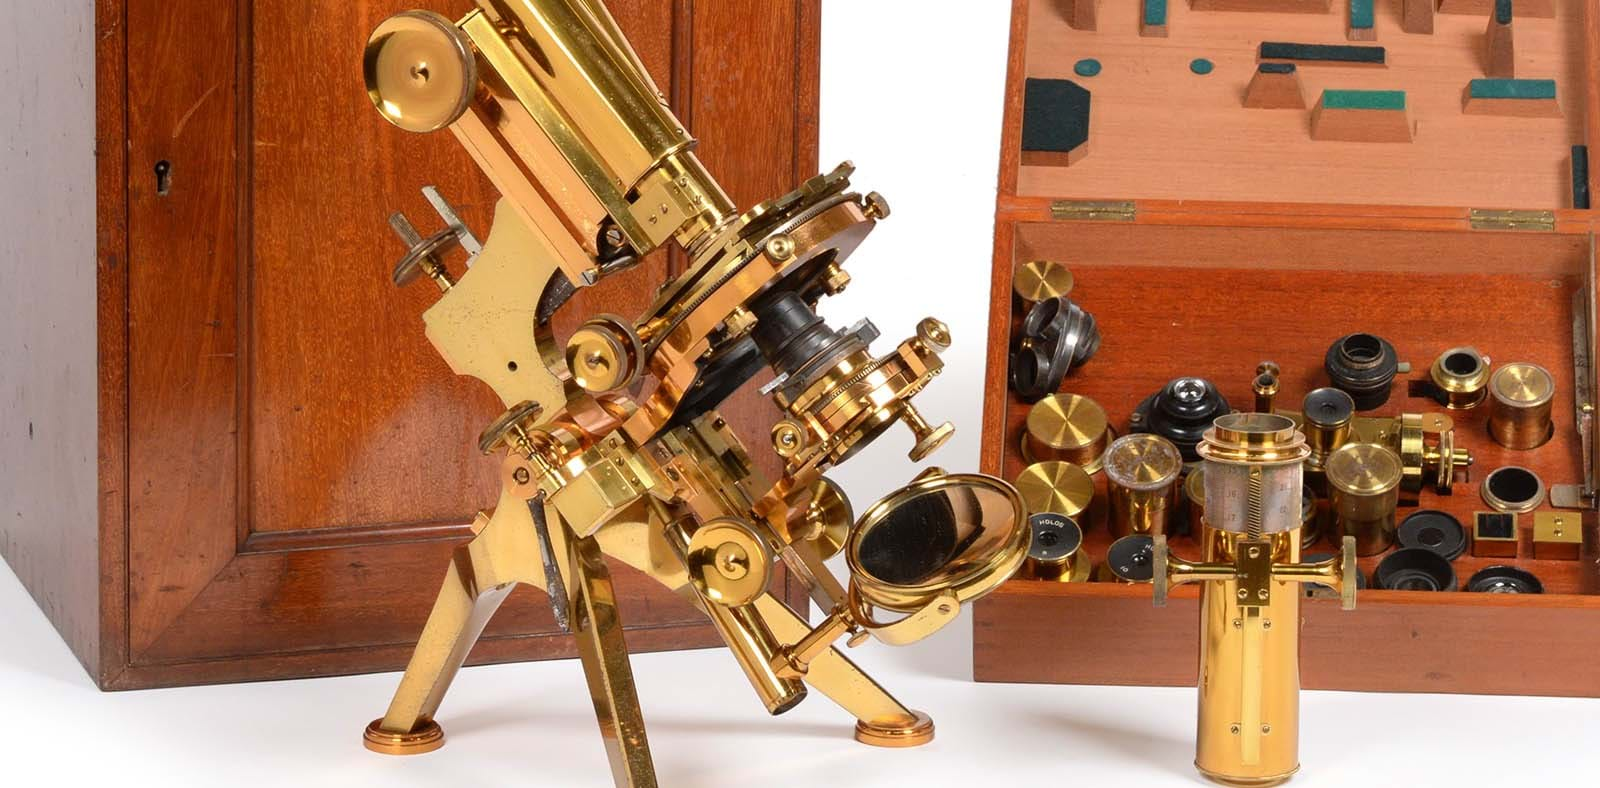 Scientific & Musical Instruments, Cameras & Tools Banner Image